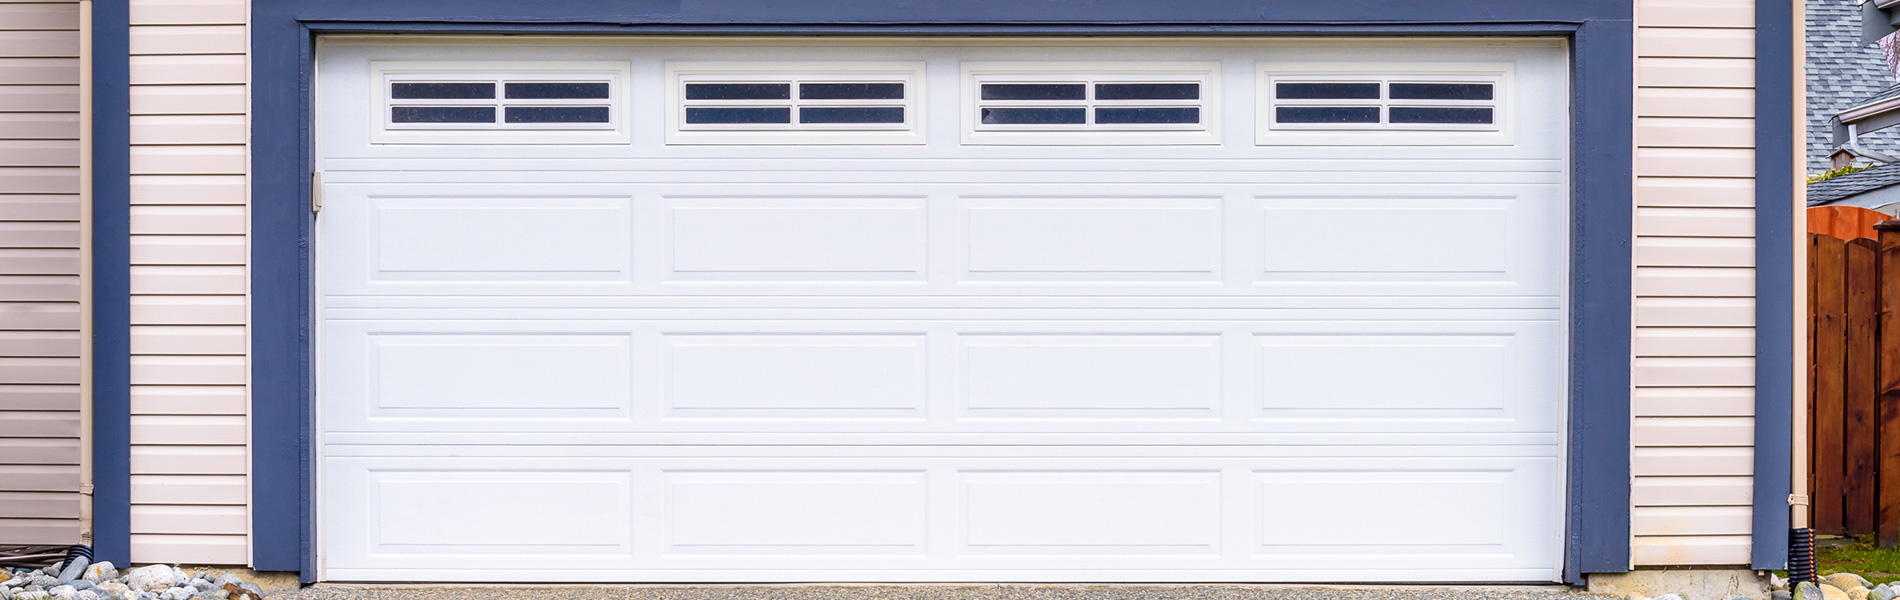 Metro Garage Door Repair Service, Macedonia, OH 440-423-5062